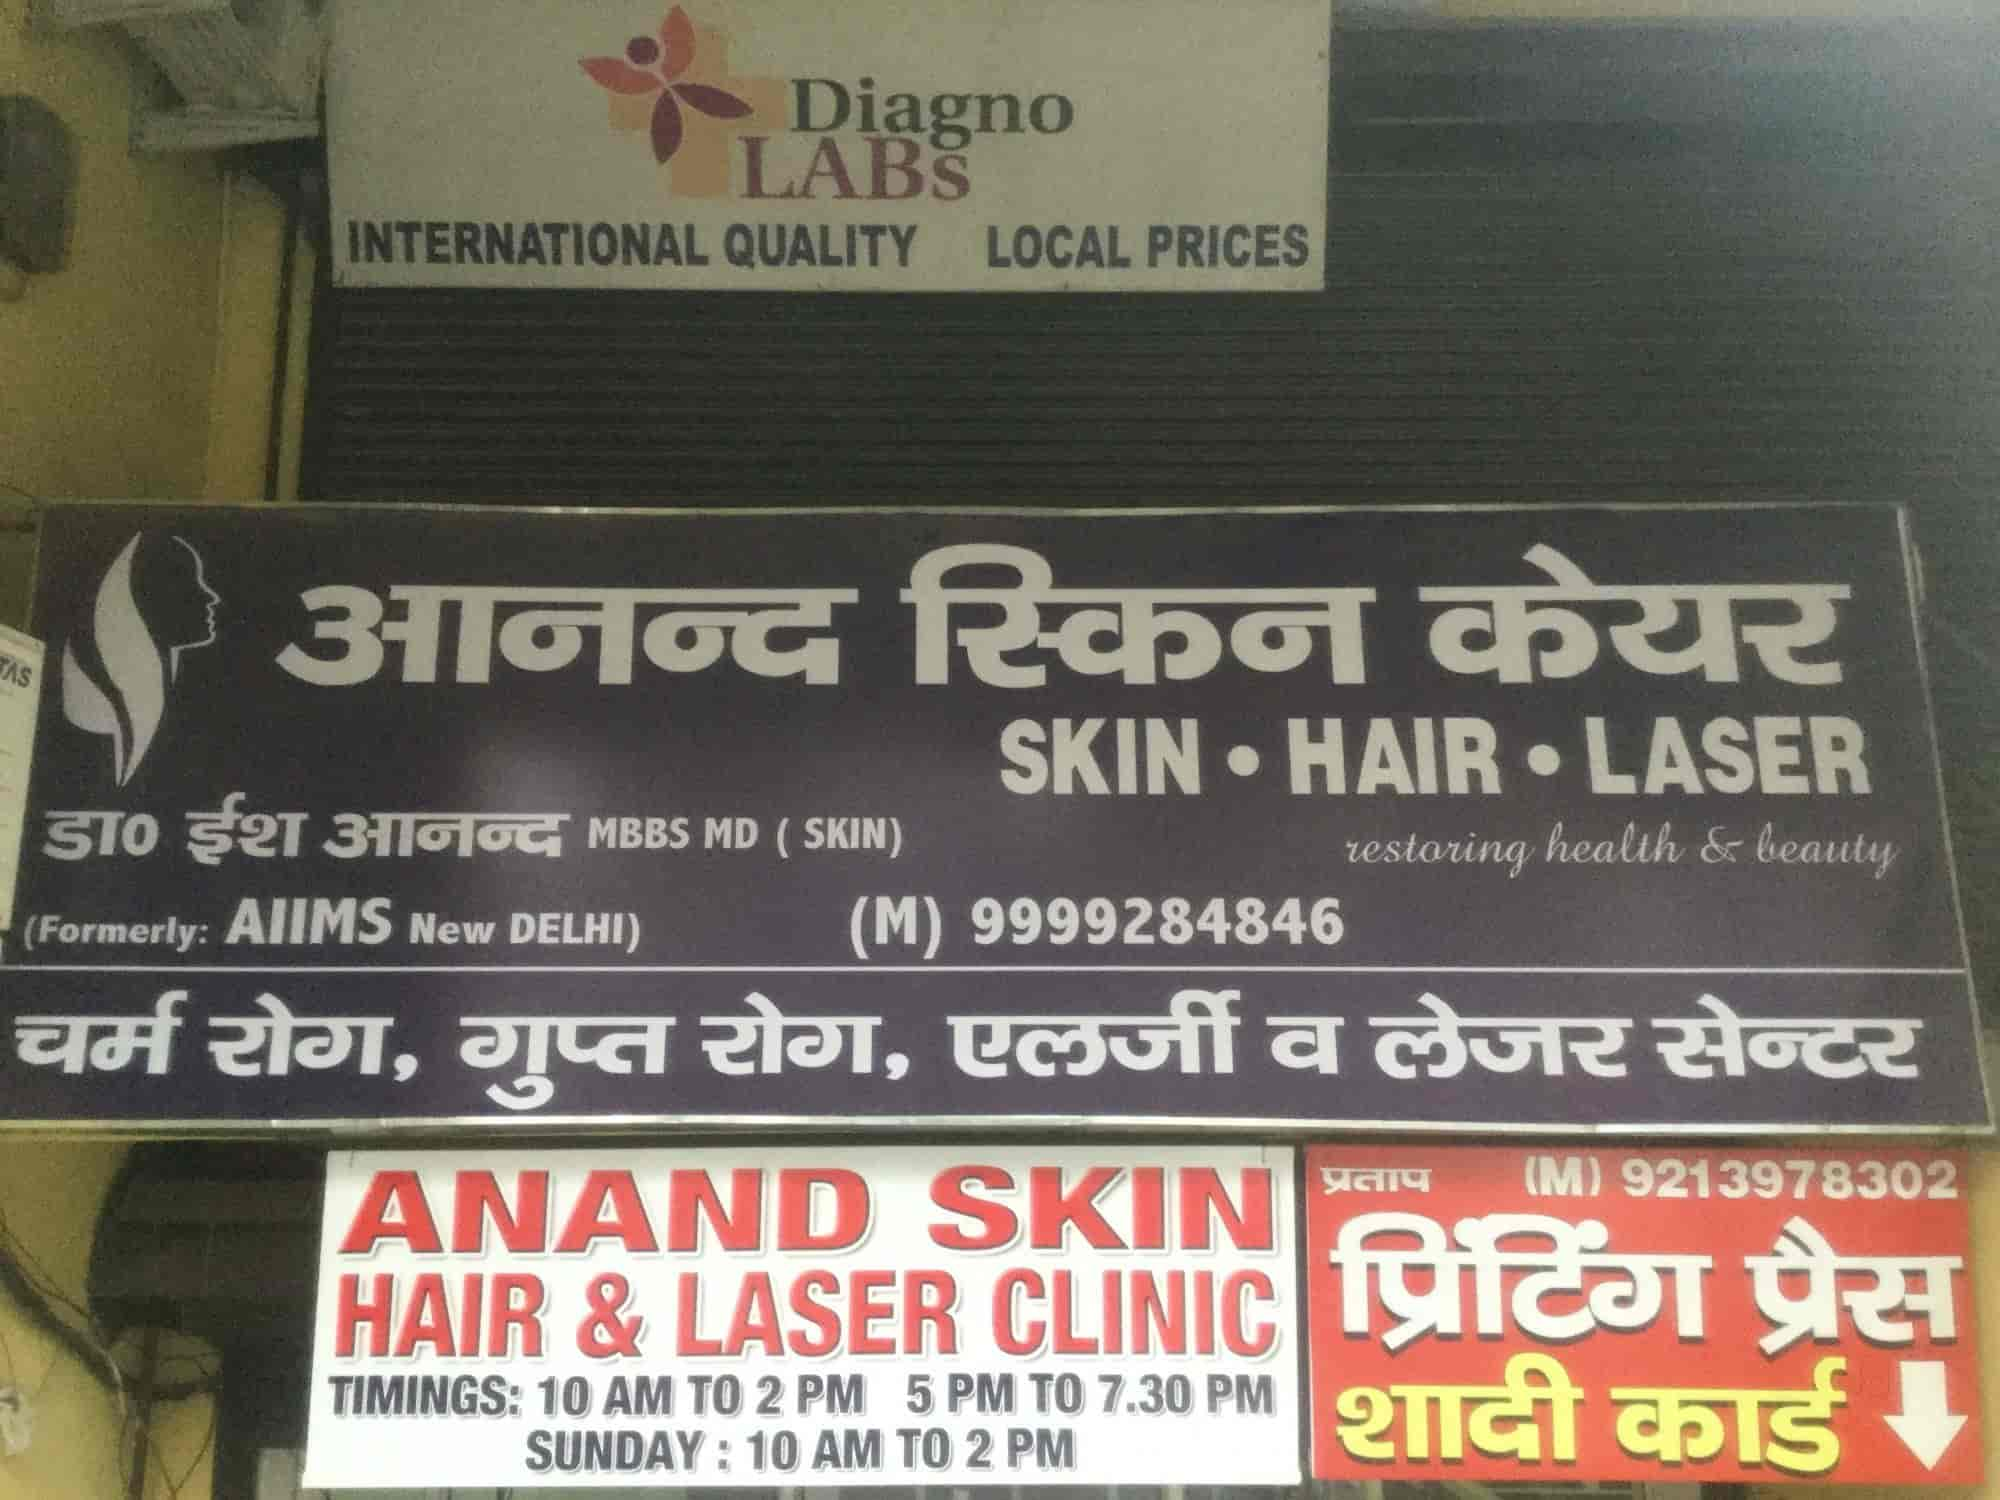 Anand Skin Care - Skin Care Clinics - Book Appointment